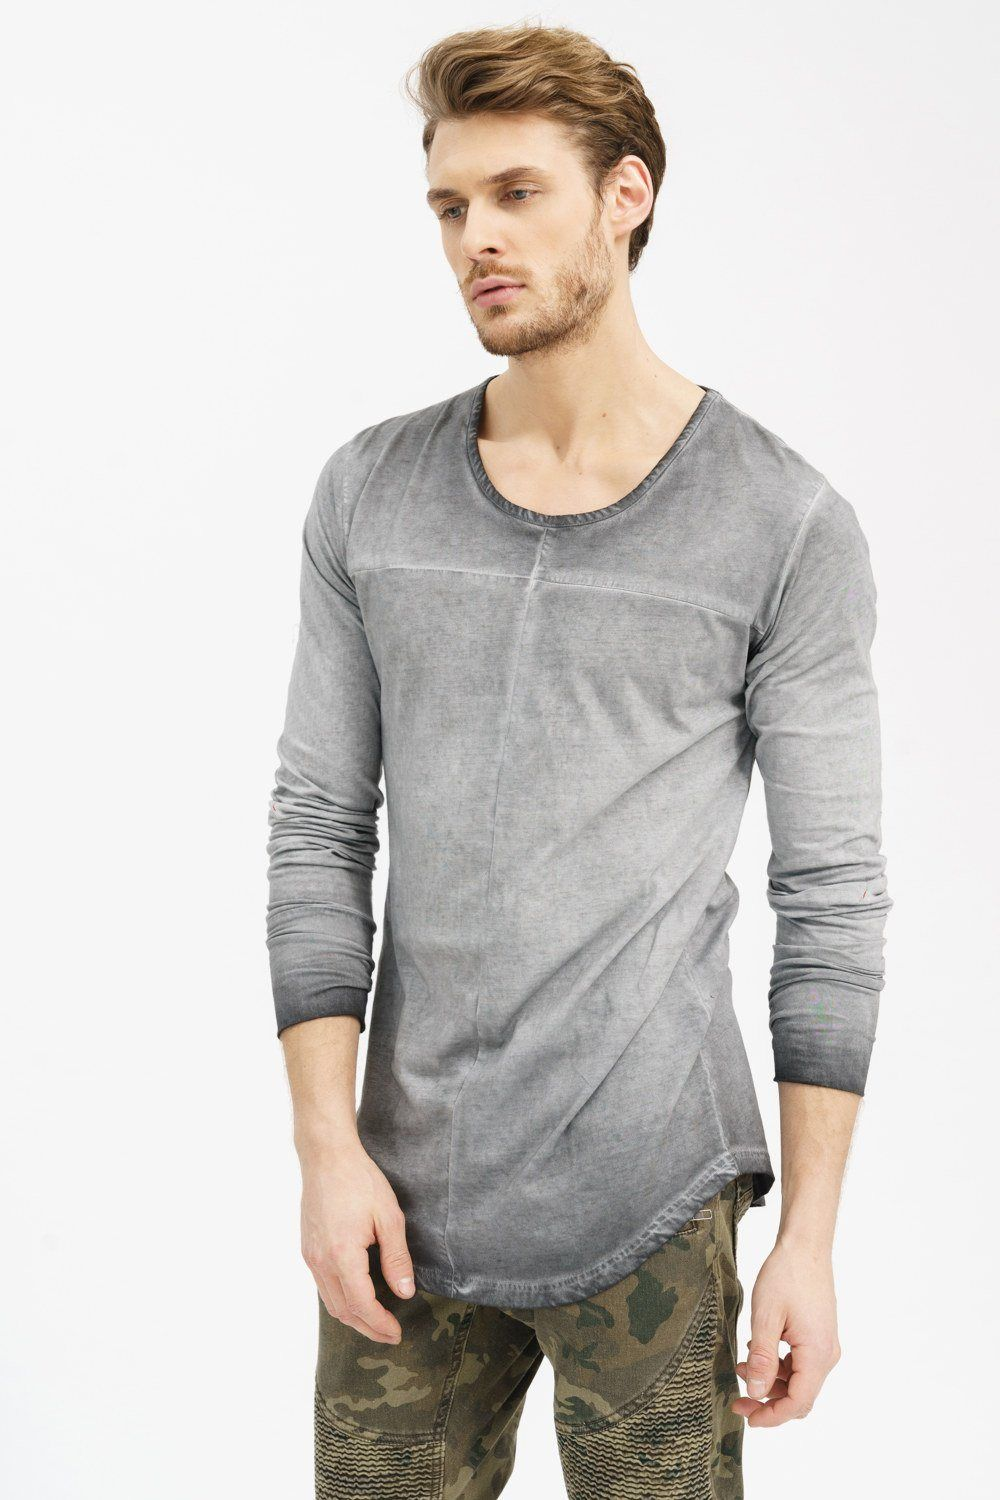 mode #ootd #outfit #fashion #style #online #Herren